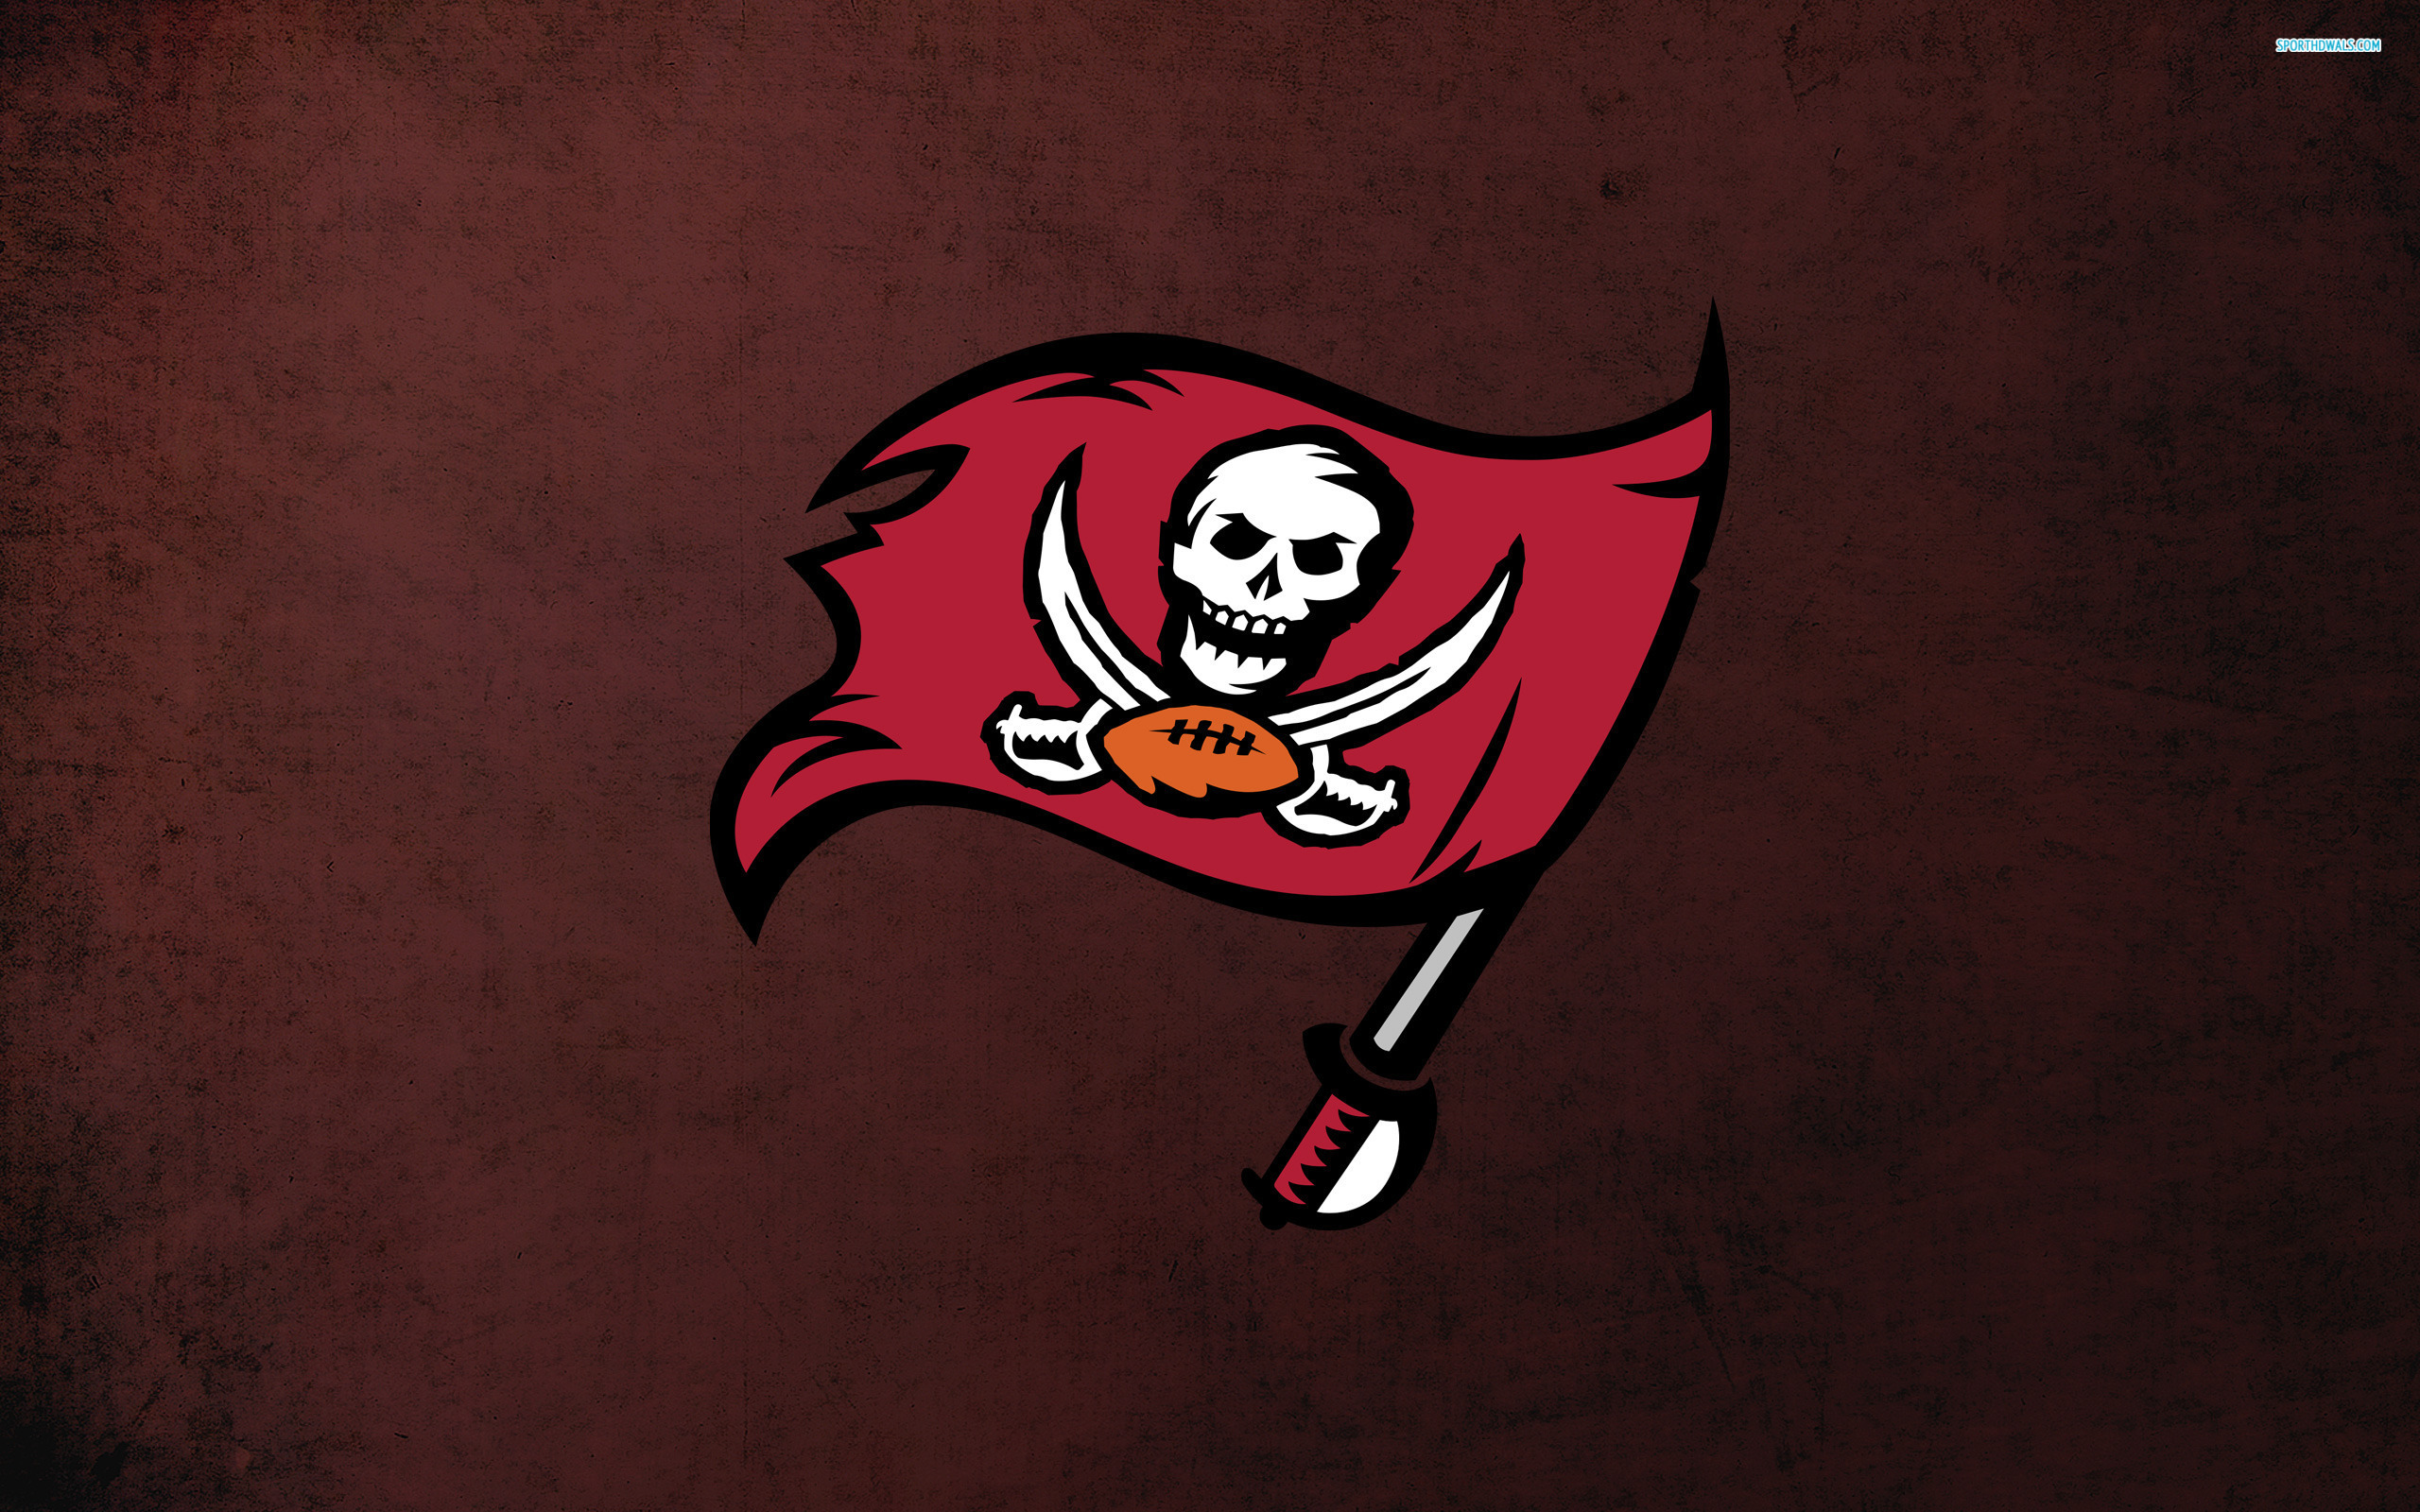 49 tampa bay bucs iphone wallpaper on wallpapersafari 49 tampa bay bucs iphone wallpaper on